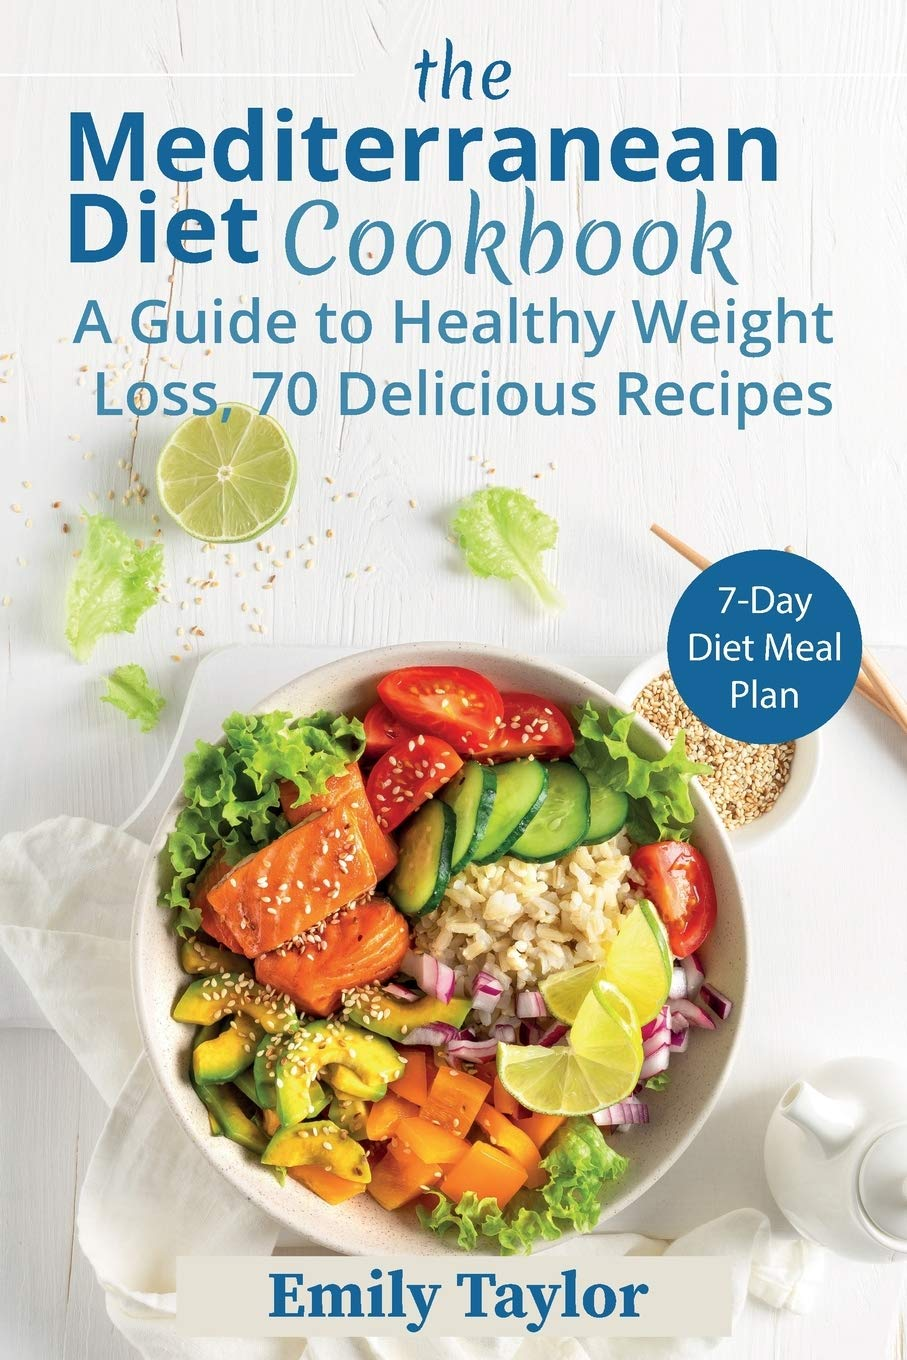 The Mediterranean Diet Cookbook: A Guide to Healthy Weight Loss, 70 Delicious Recipes, 7-Day Diet Meal Plan (Black and white pics) 1